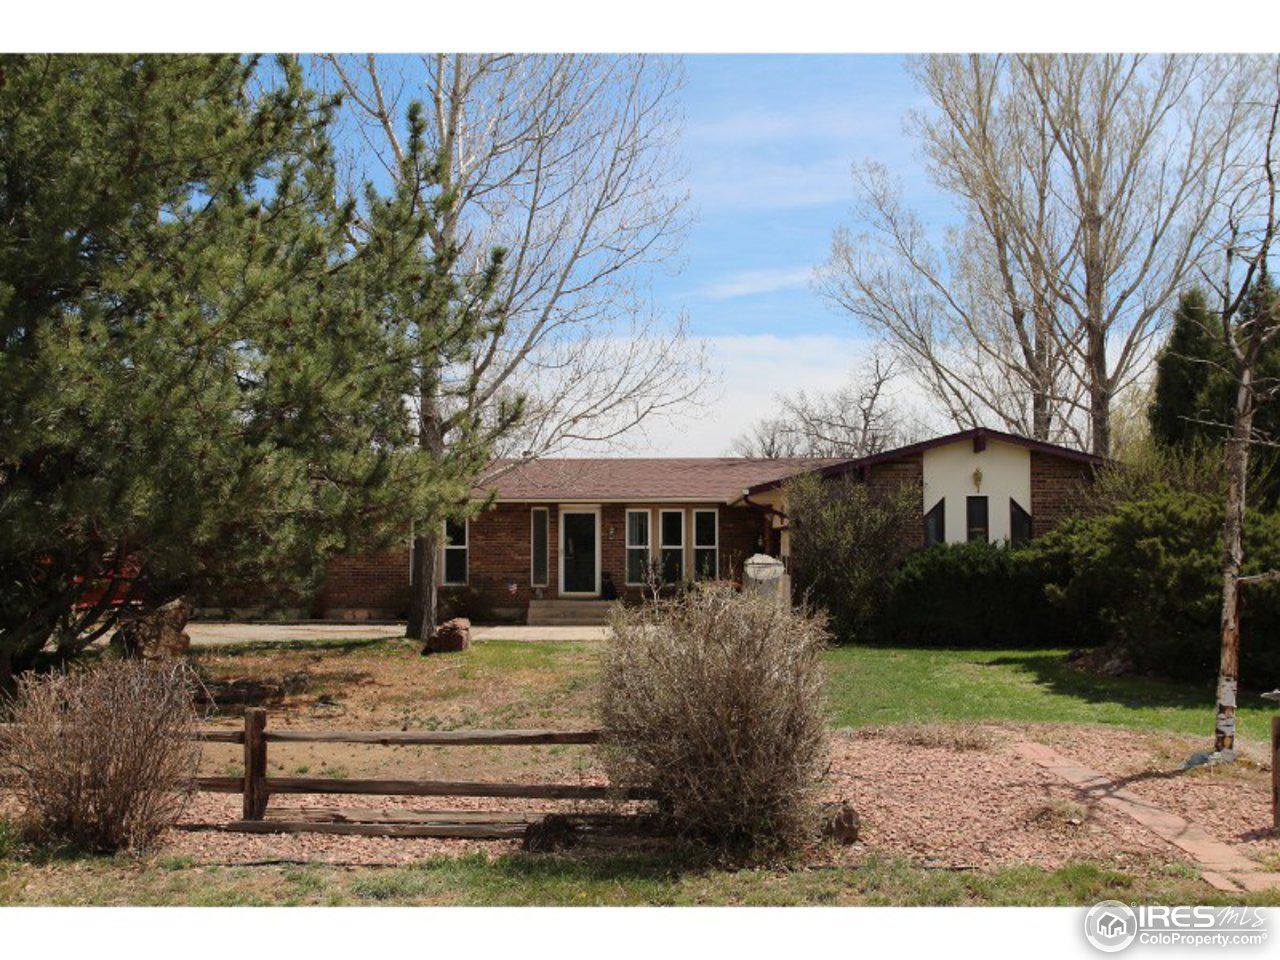 17940 Wagon Trail Loveland Home Listings - Team Cook Real Estate